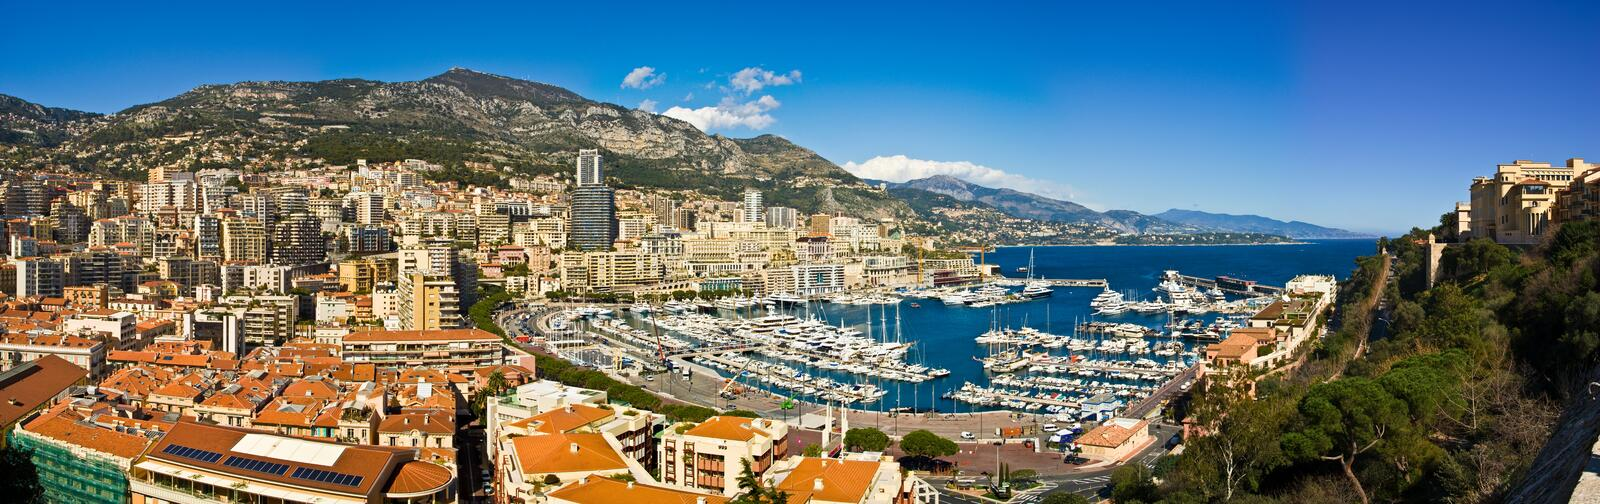 Download Monaco Monte Carlo editorial image. Image of monte, homes - 23930870